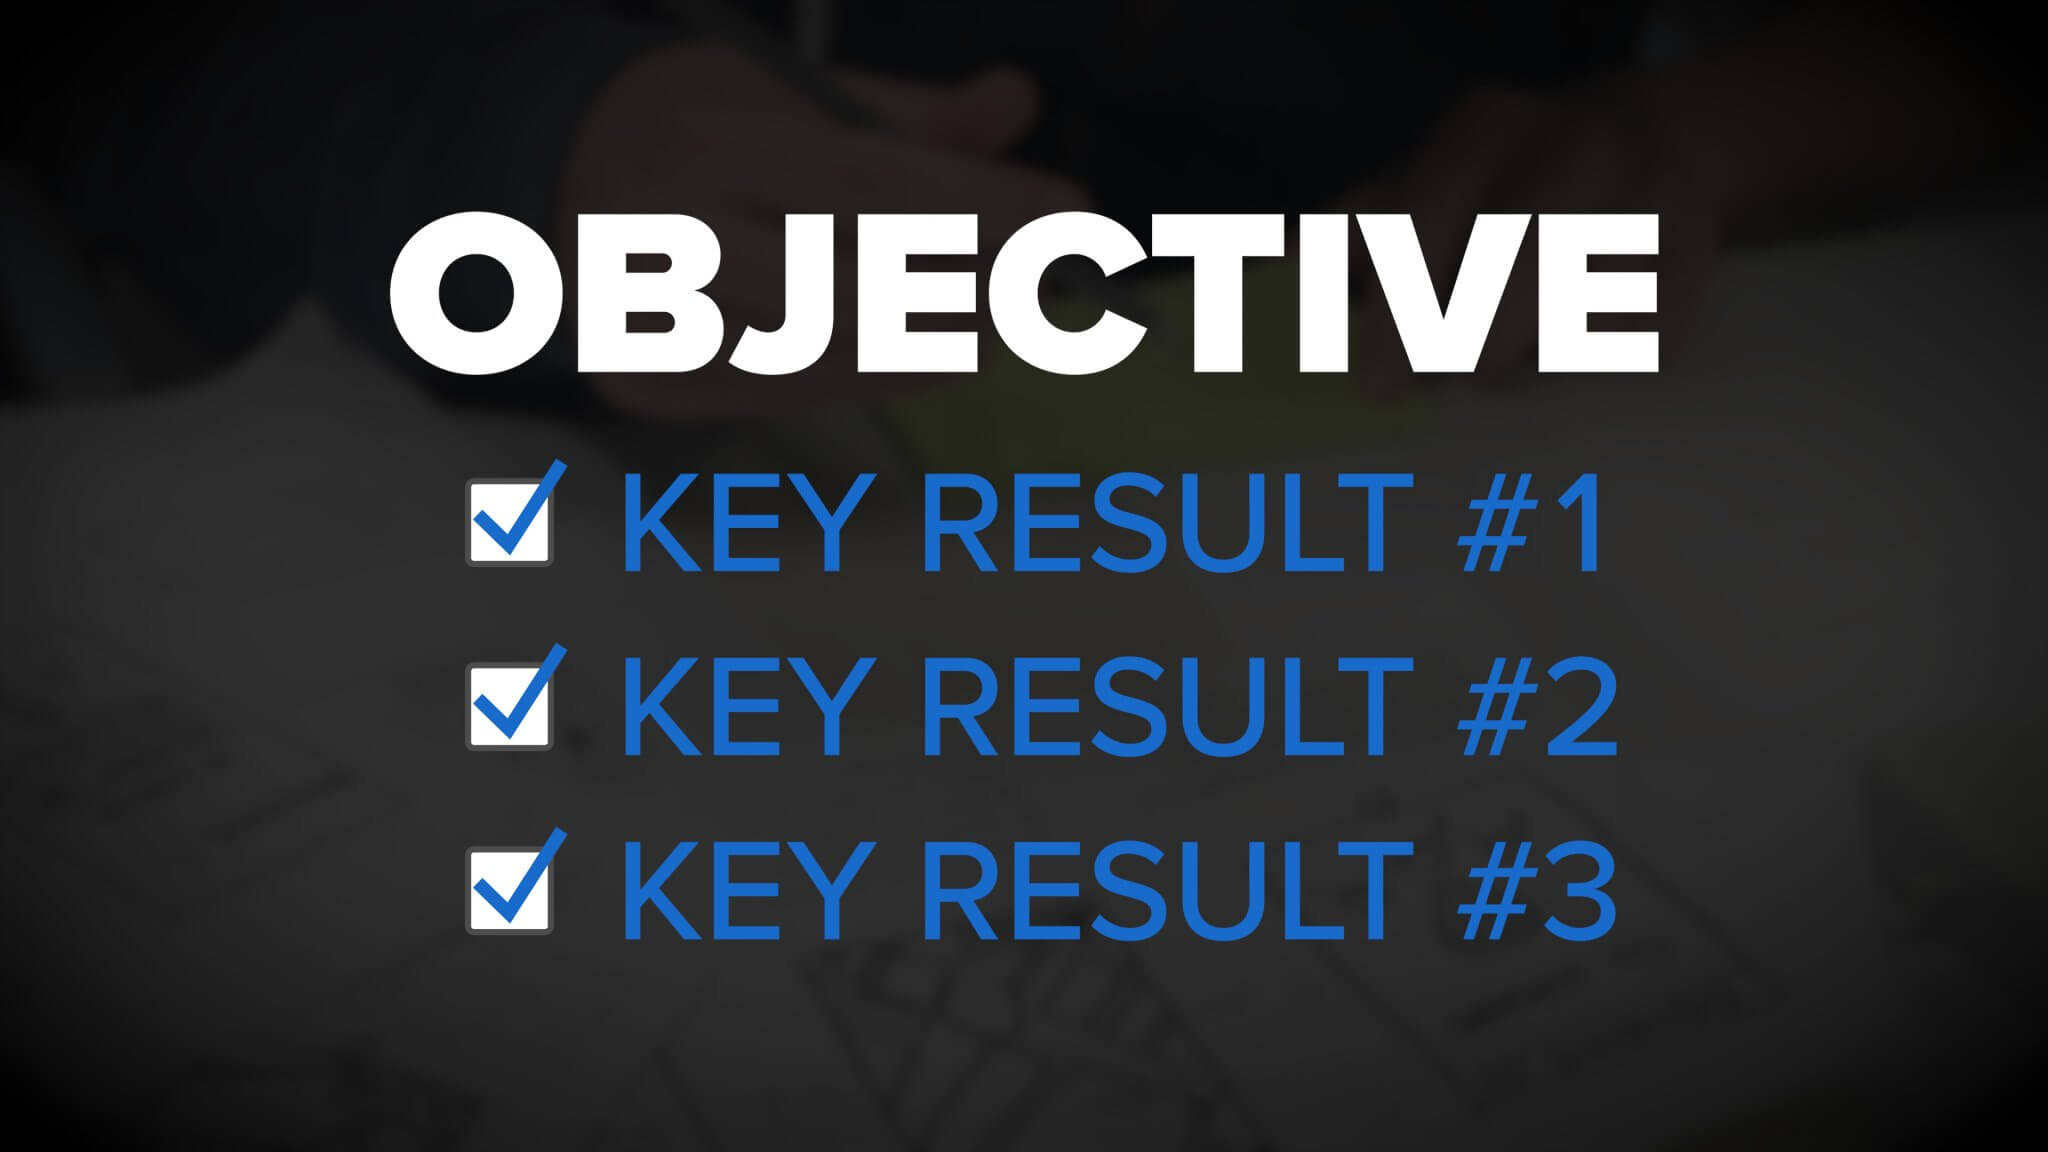 Okrs Obtectives And Key Results Infographic